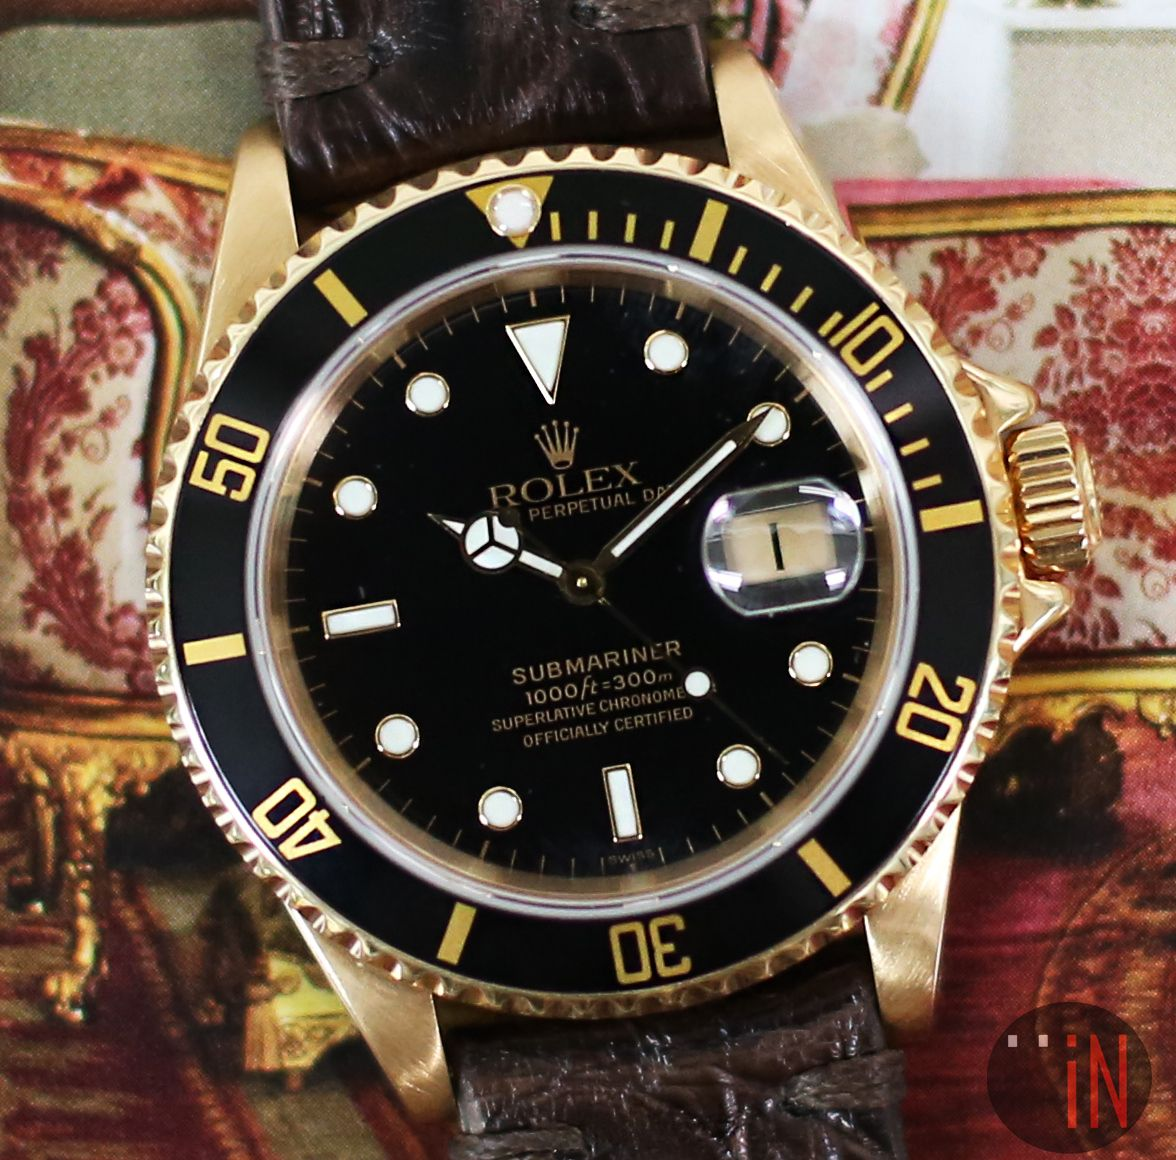 A Titanic Luxury Rolex 40mm Submariner S Serial Circa 1994 Ref 16618 18k Yellow Gold Http Www Elementintime Com R Rolex Rolex Submariner Submariner